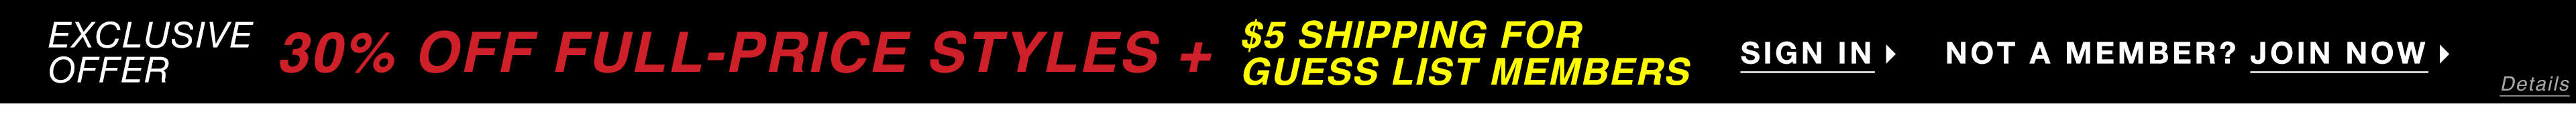 $5 Shipping For Guess List Members